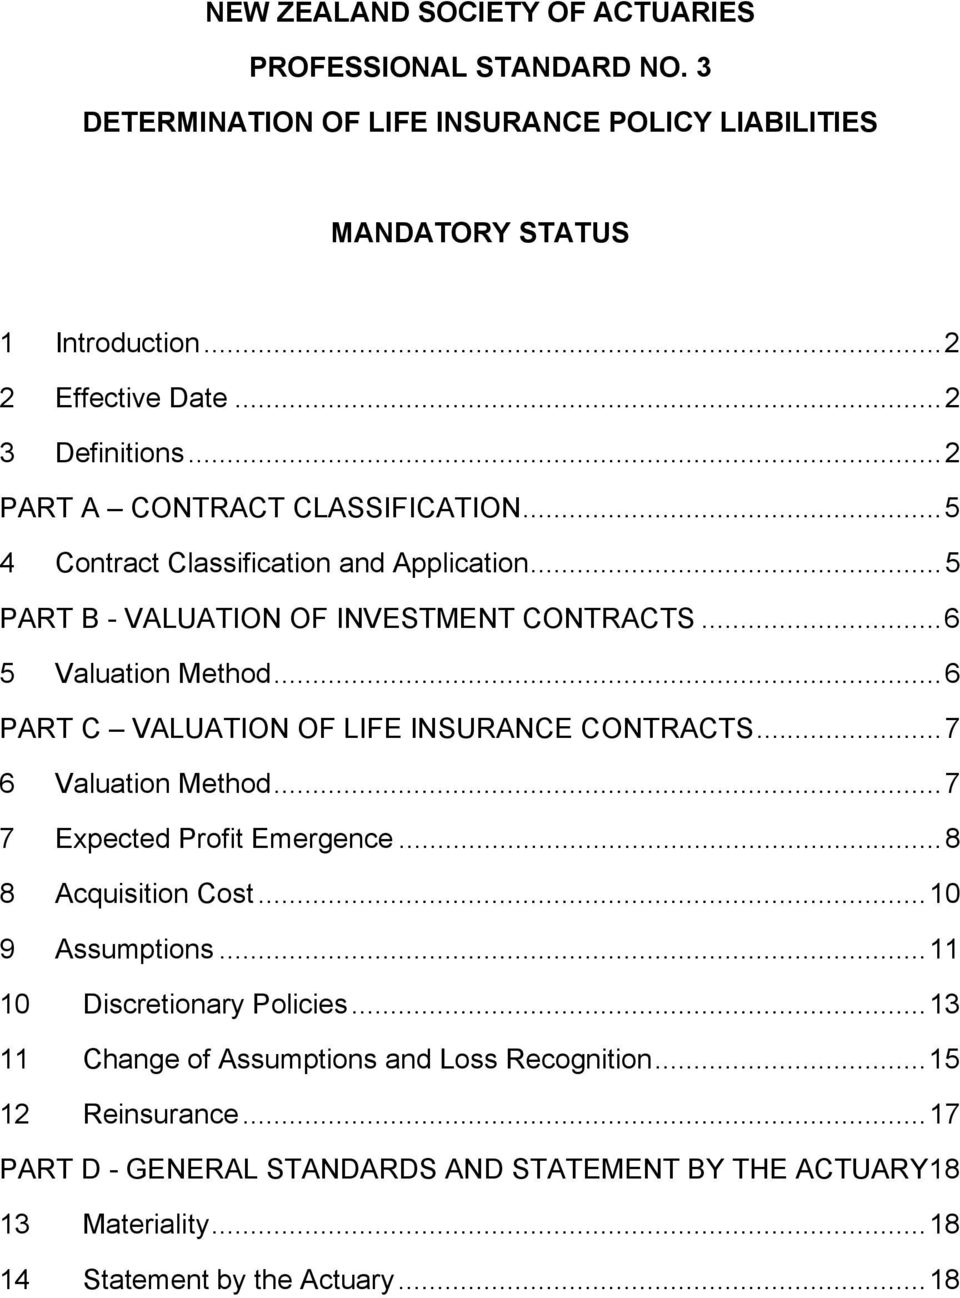 ..6 PART C VALUATION OF LIFE INSURANCE CONTRACTS...7 6 Valuation Method...7 7 Expected Profit Emergence...8 8 Acquisition Cost...10 9 Assumptions...11 10 Discretionary Policies.